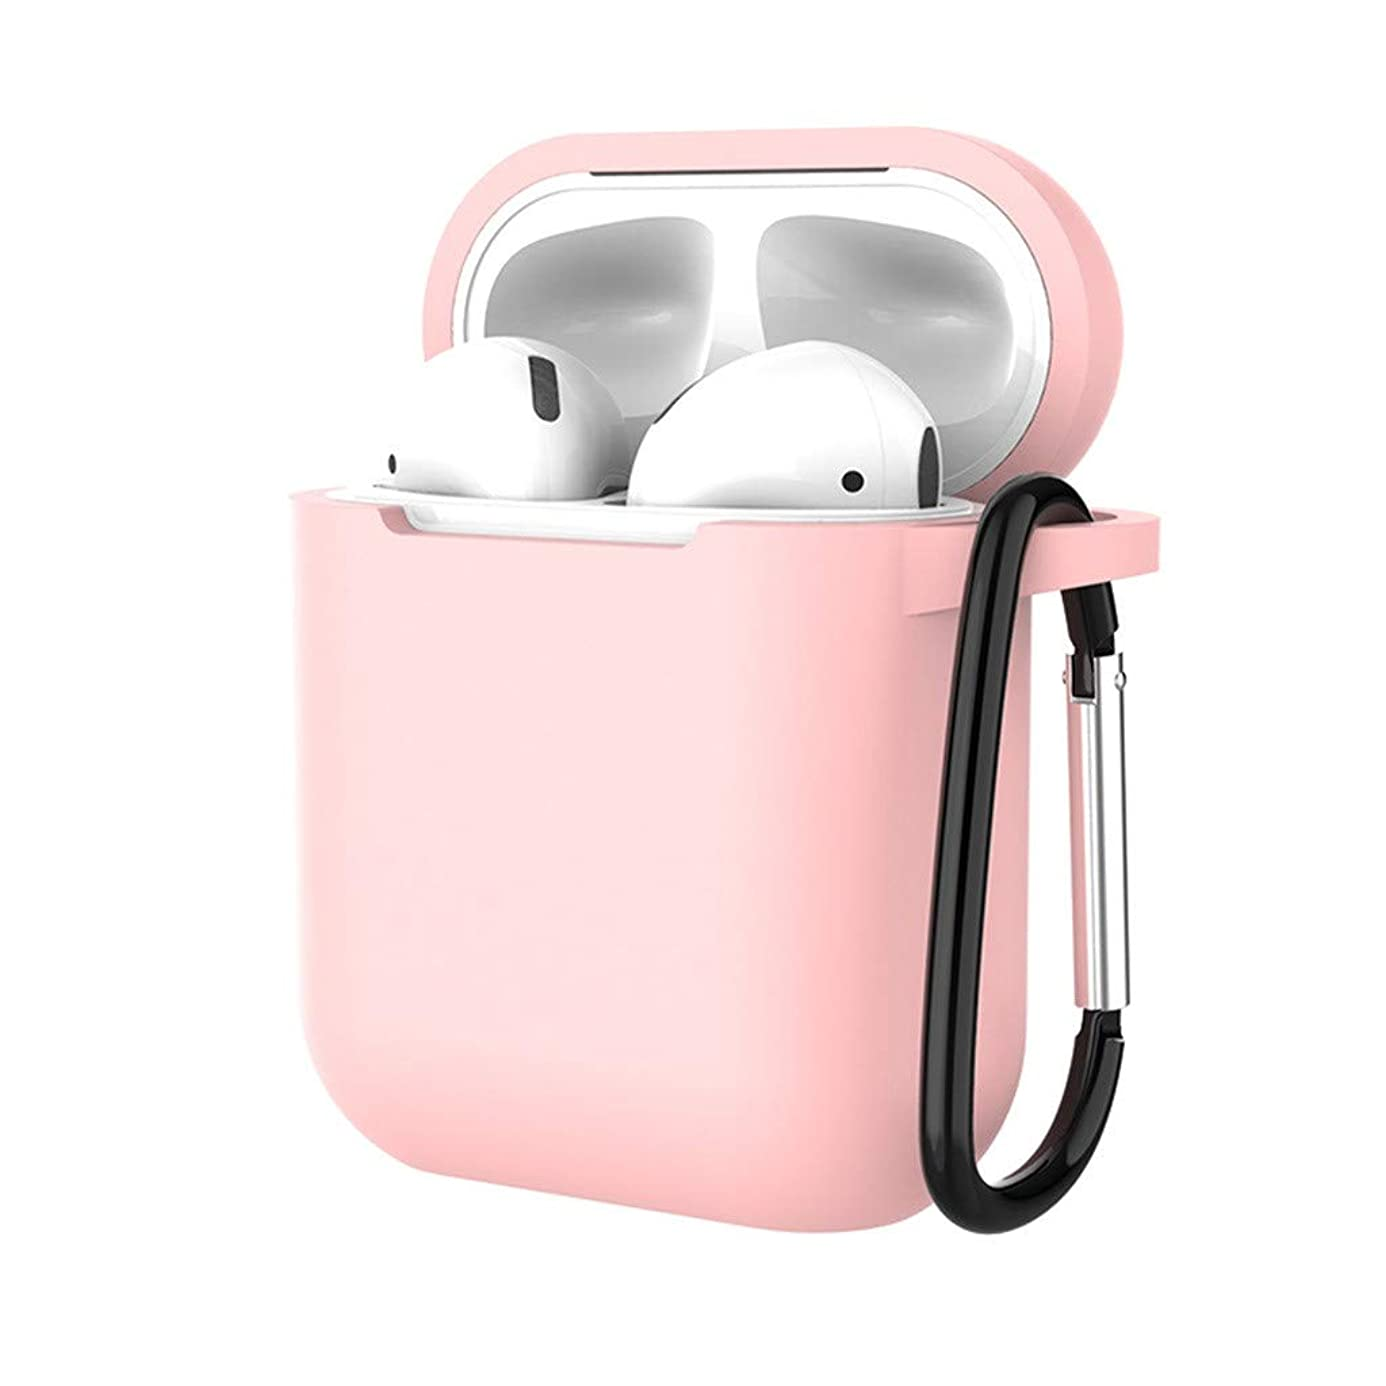 YRD TECH Case Protective Silicone Cover and Skin with Ear Hook for Apple AirPods, Best Gift for Girls and Women